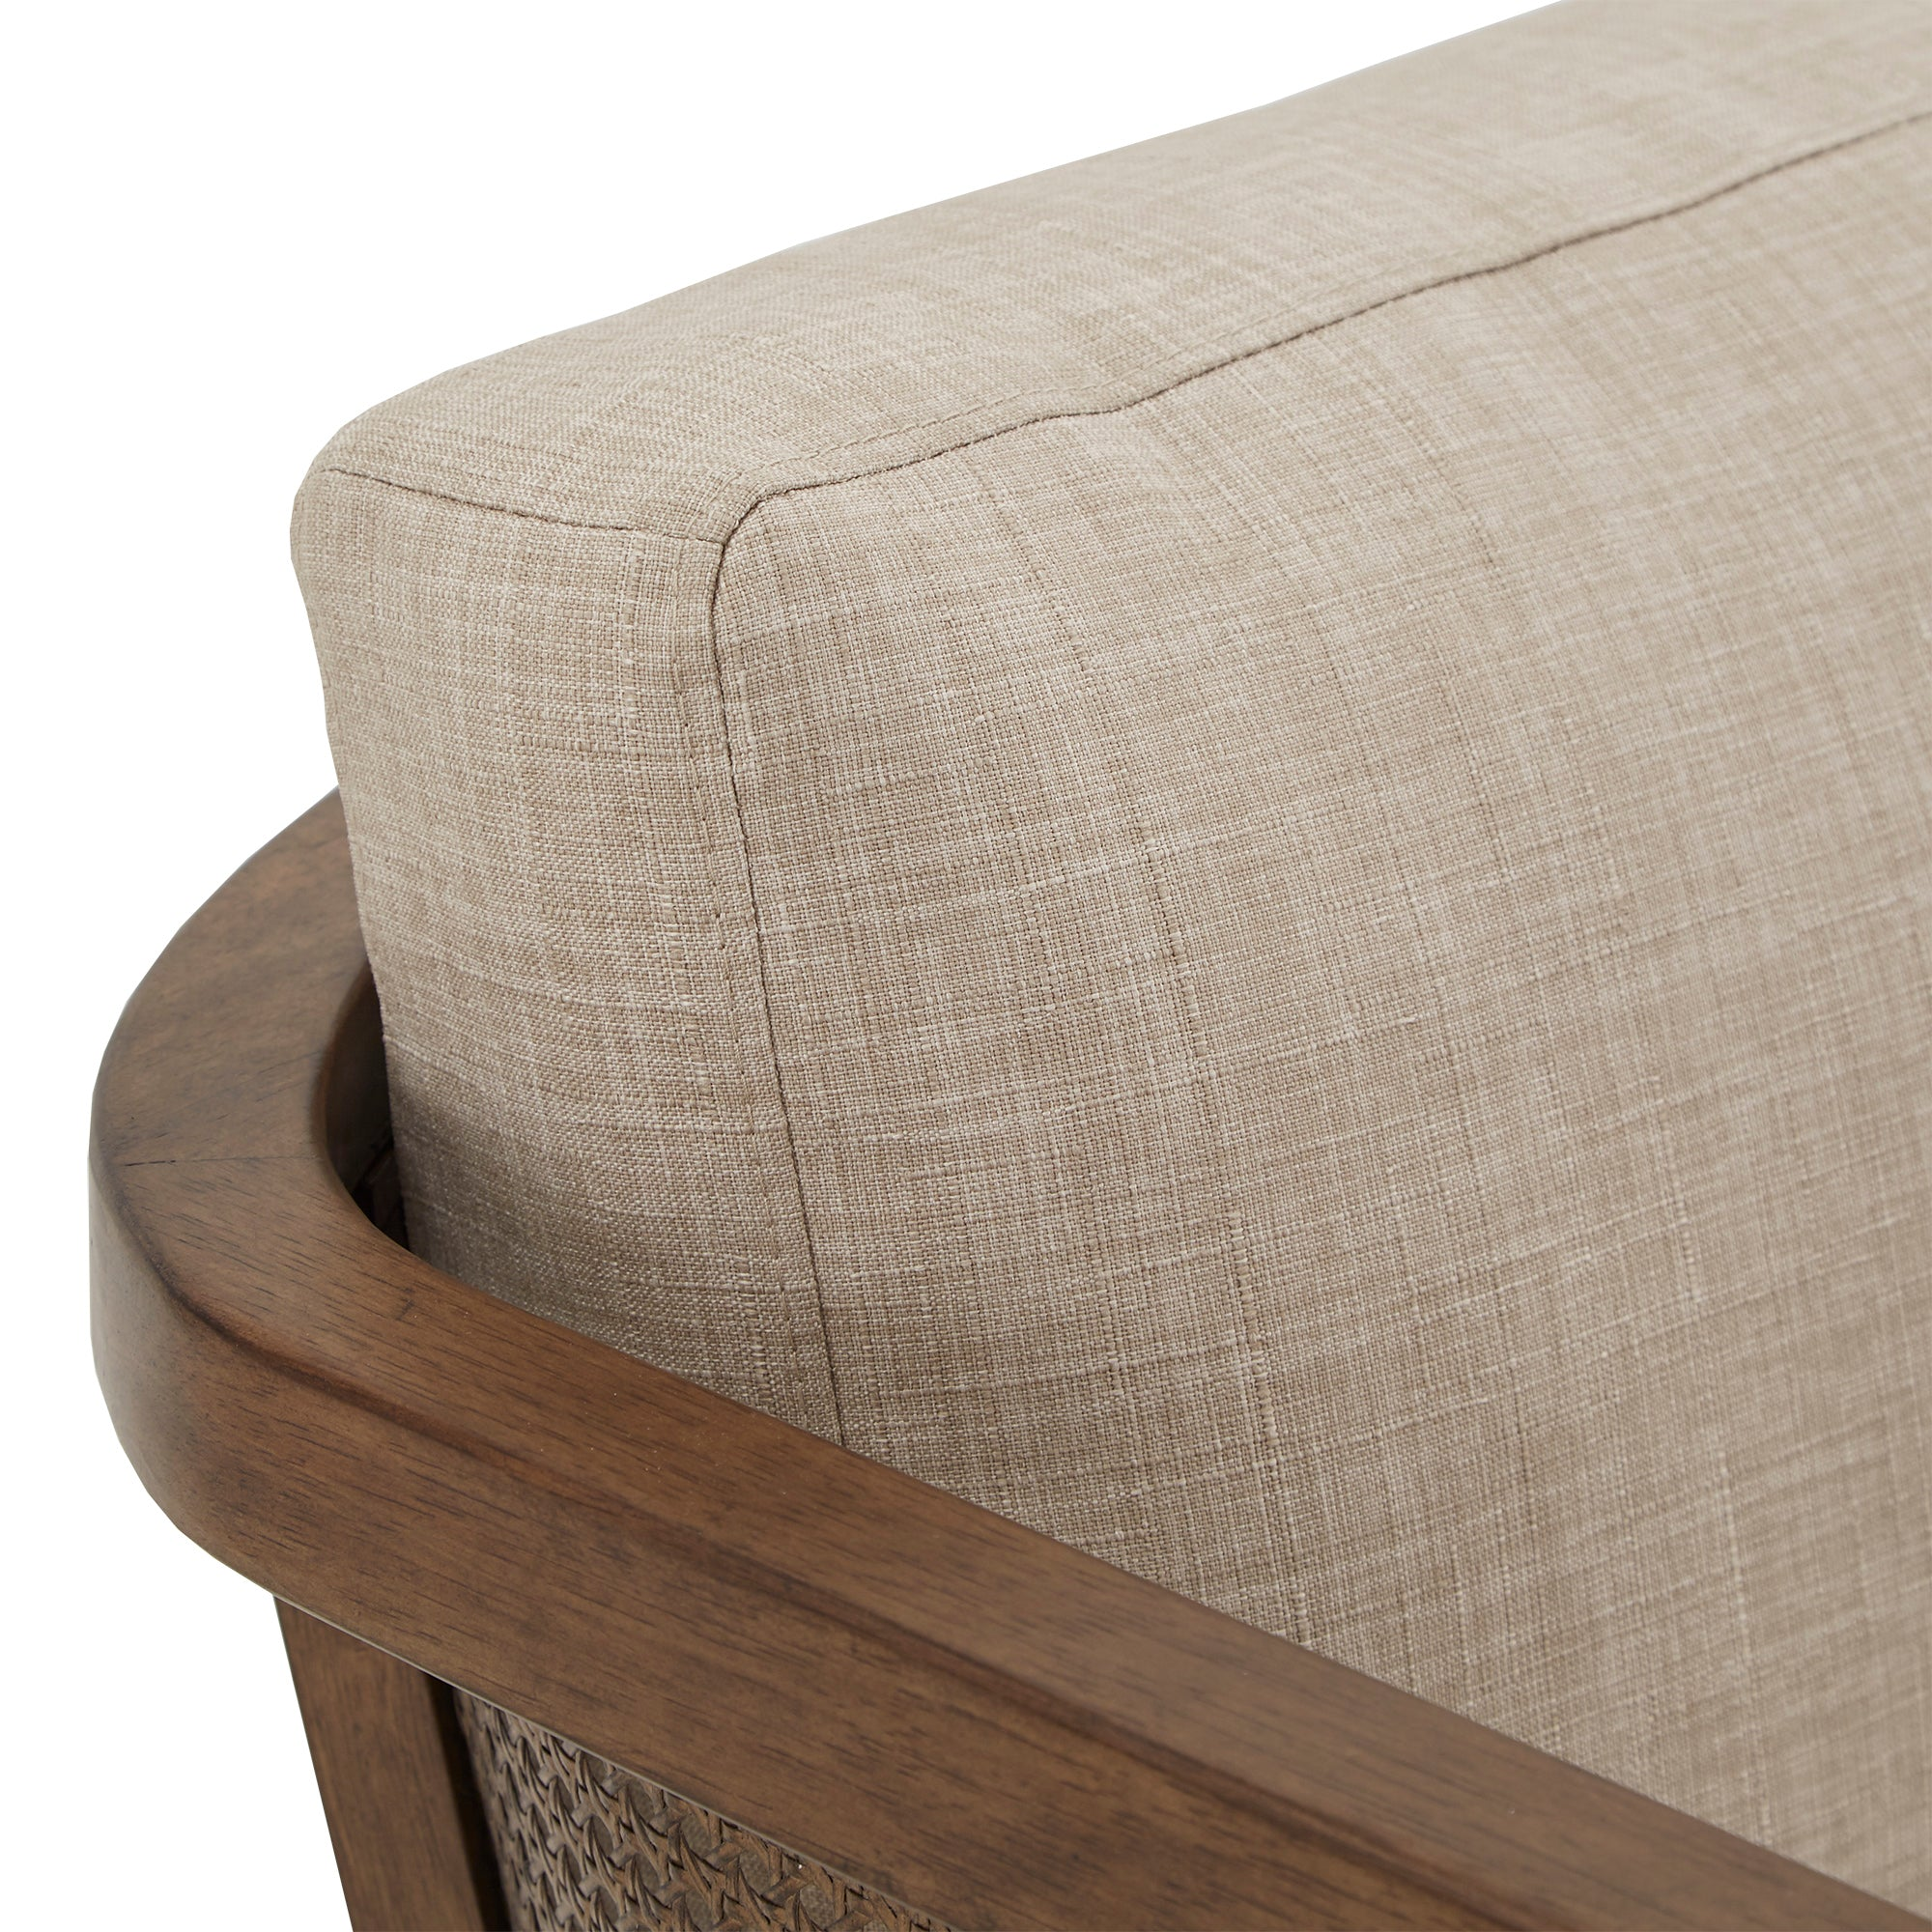 Walnut Finish Fabric Cane Accent Chair - Beige Linen